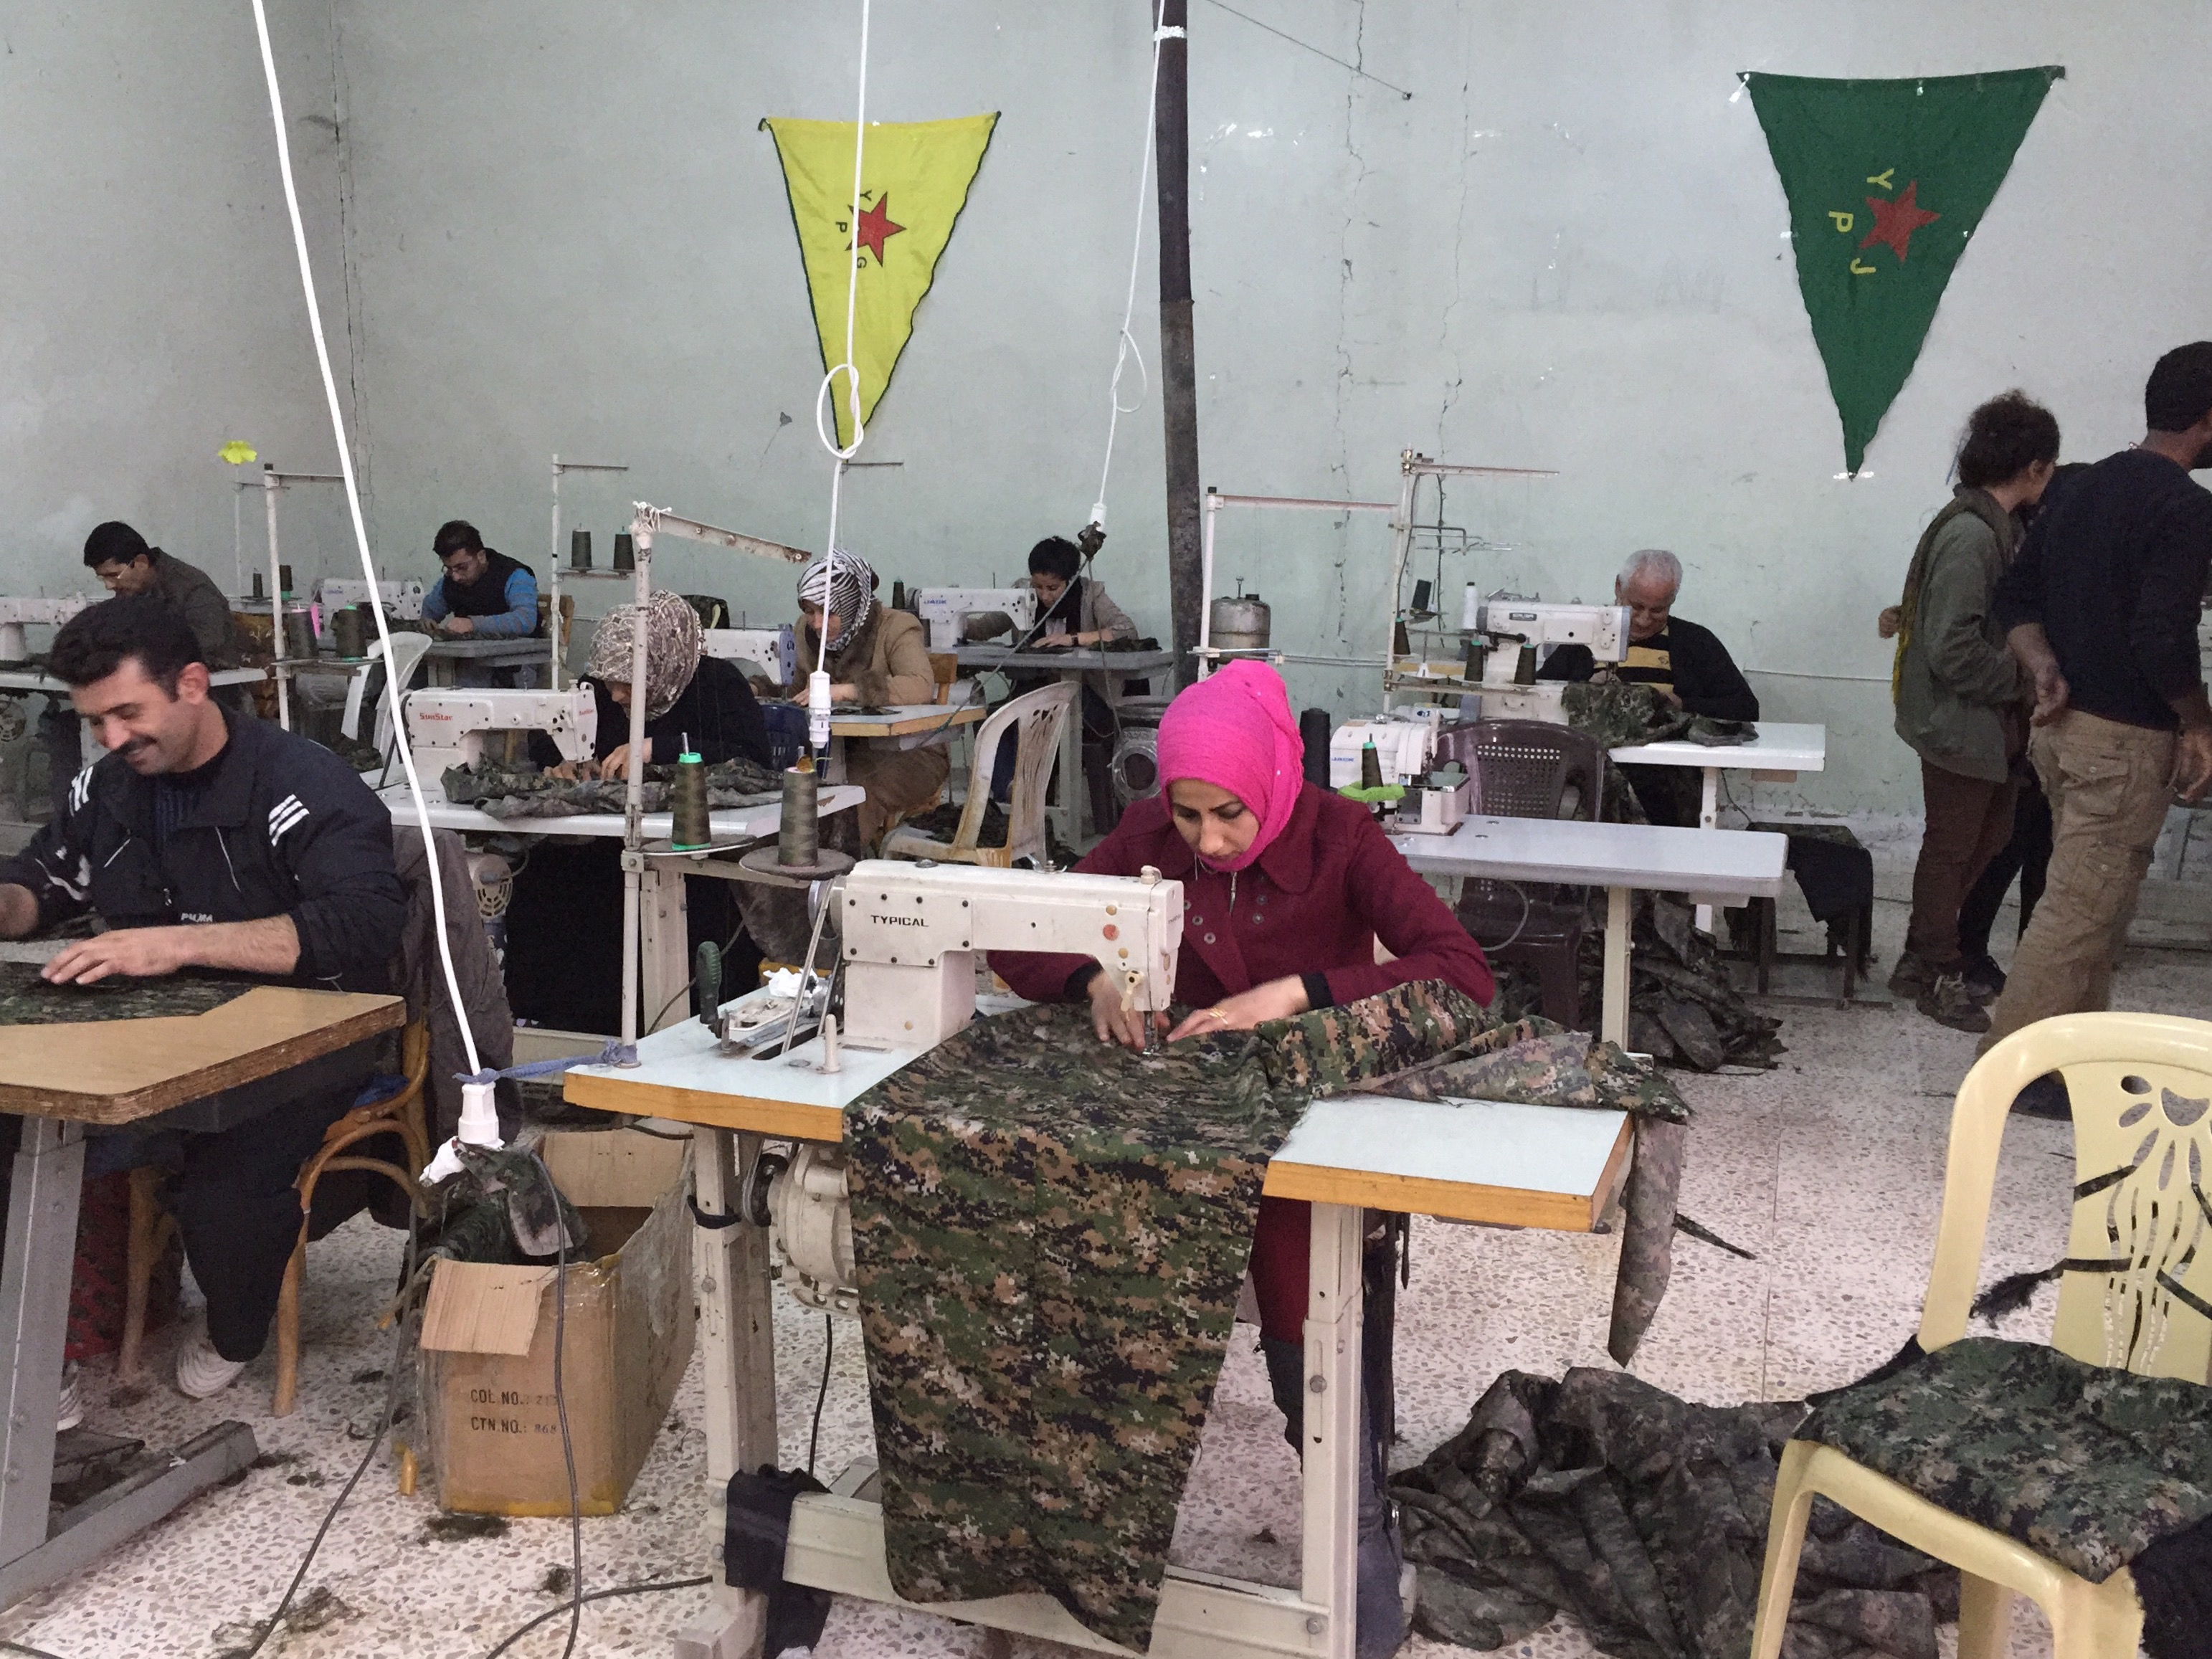 Members of a sewing cooperative in Rojava (Janet Biehl/Wikipedia)